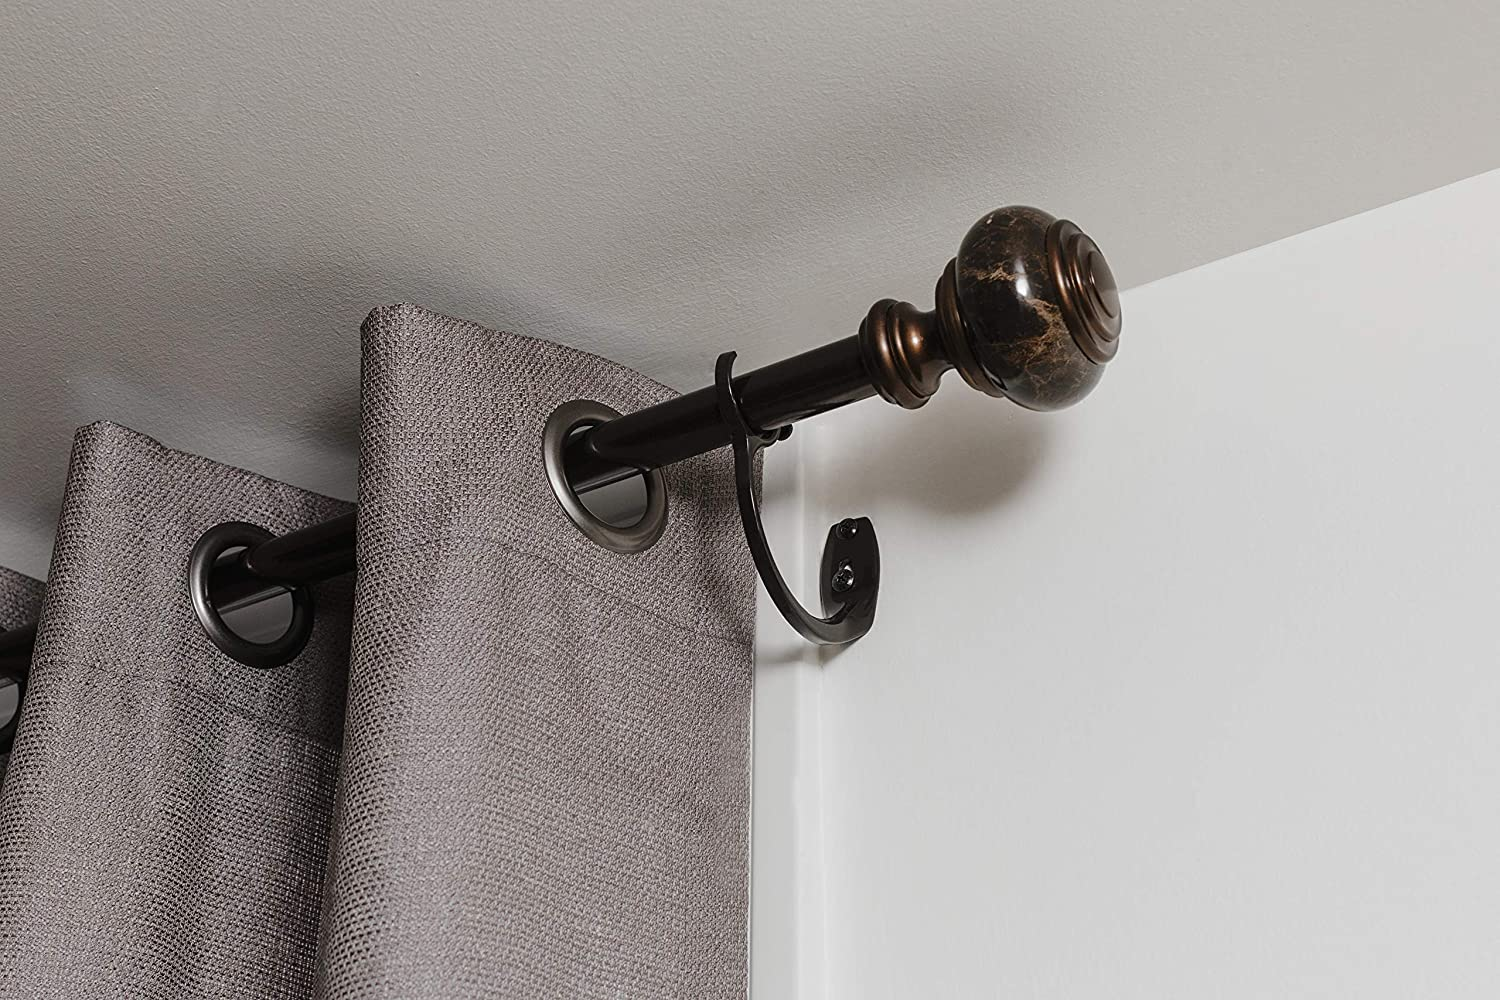 Umbra 244869-834-REM Curtain Rod For Window, 120 to 170-Inches, Polished Bronze: Home & Kitchen